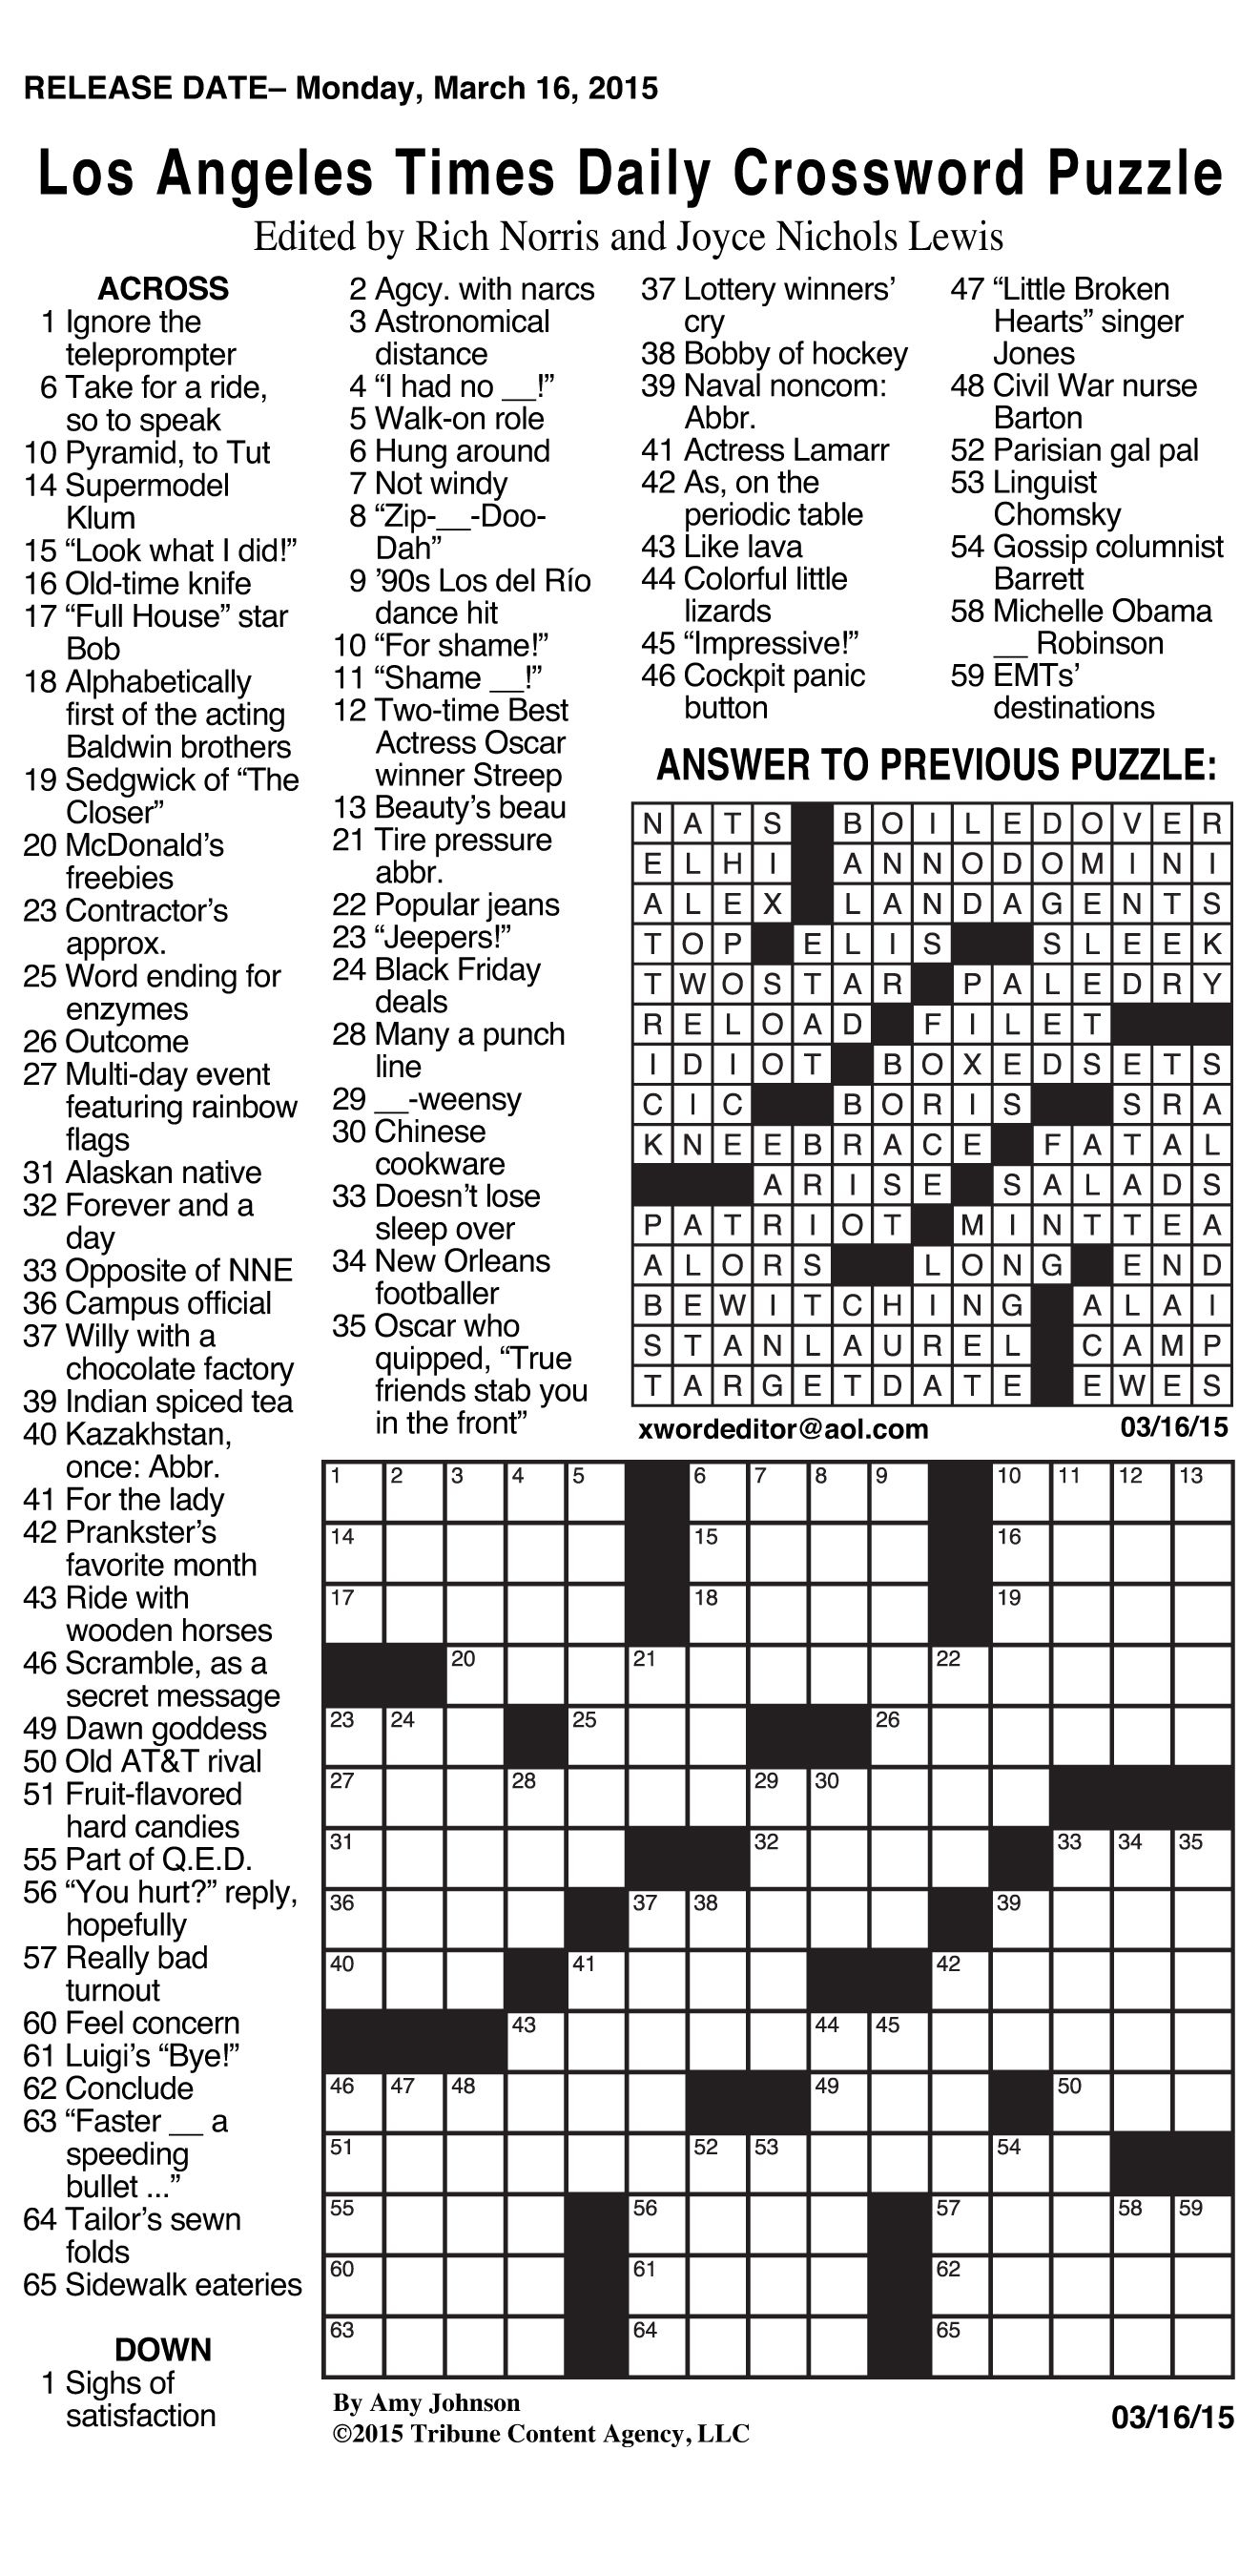 Canonprintermx410: 26 Fresh Free La Times Crossword - La Times Printable Crossword Puzzles 2017